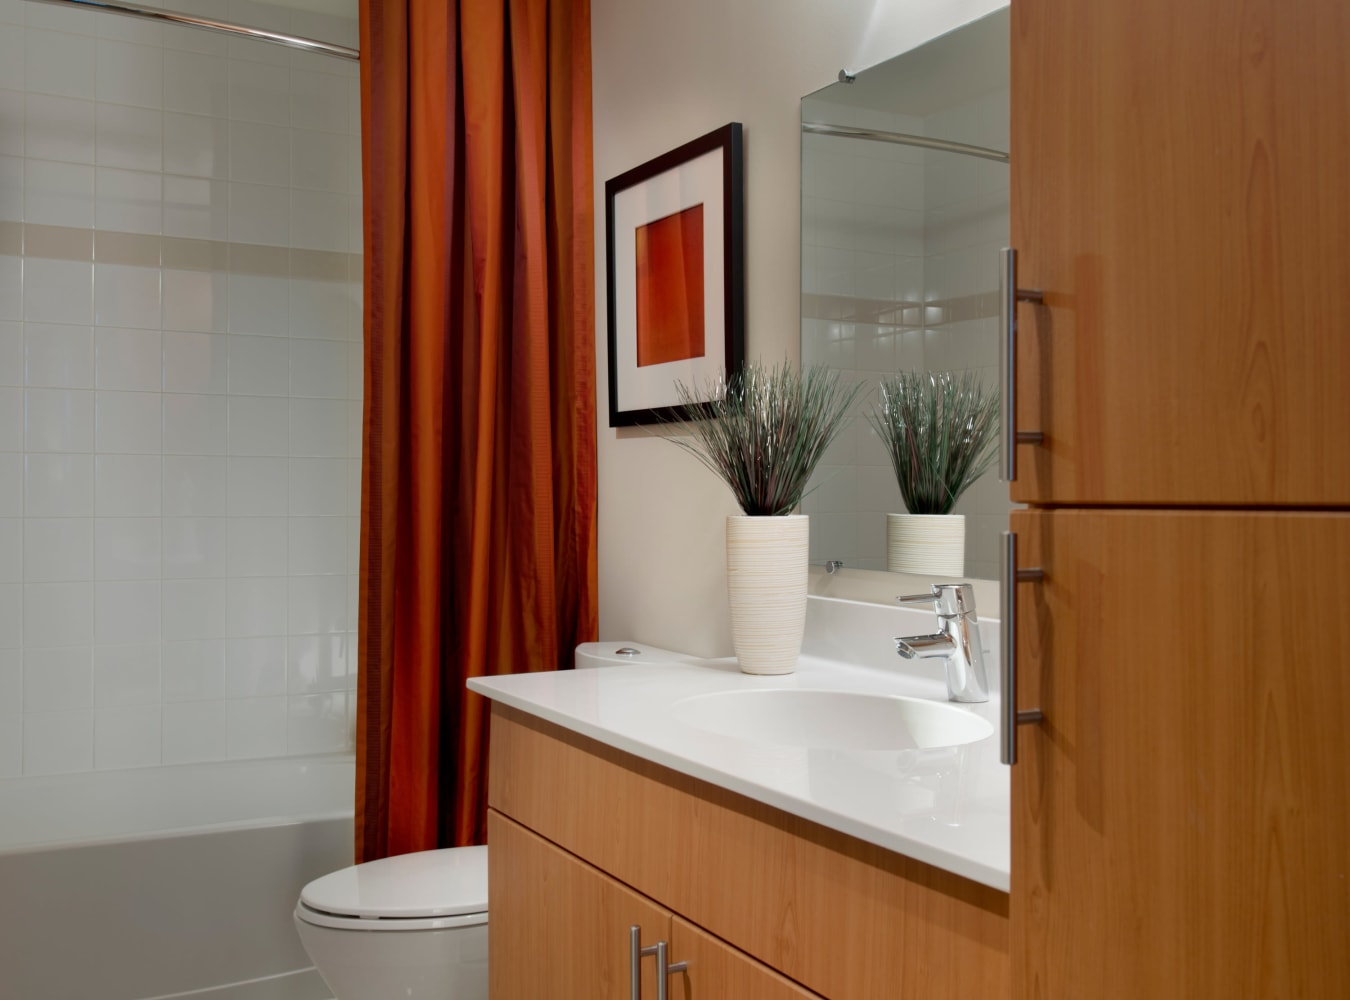 A modern bathroom with plenty of cabinet space at Solaire 1150 Ripley in Silver Spring, Maryland